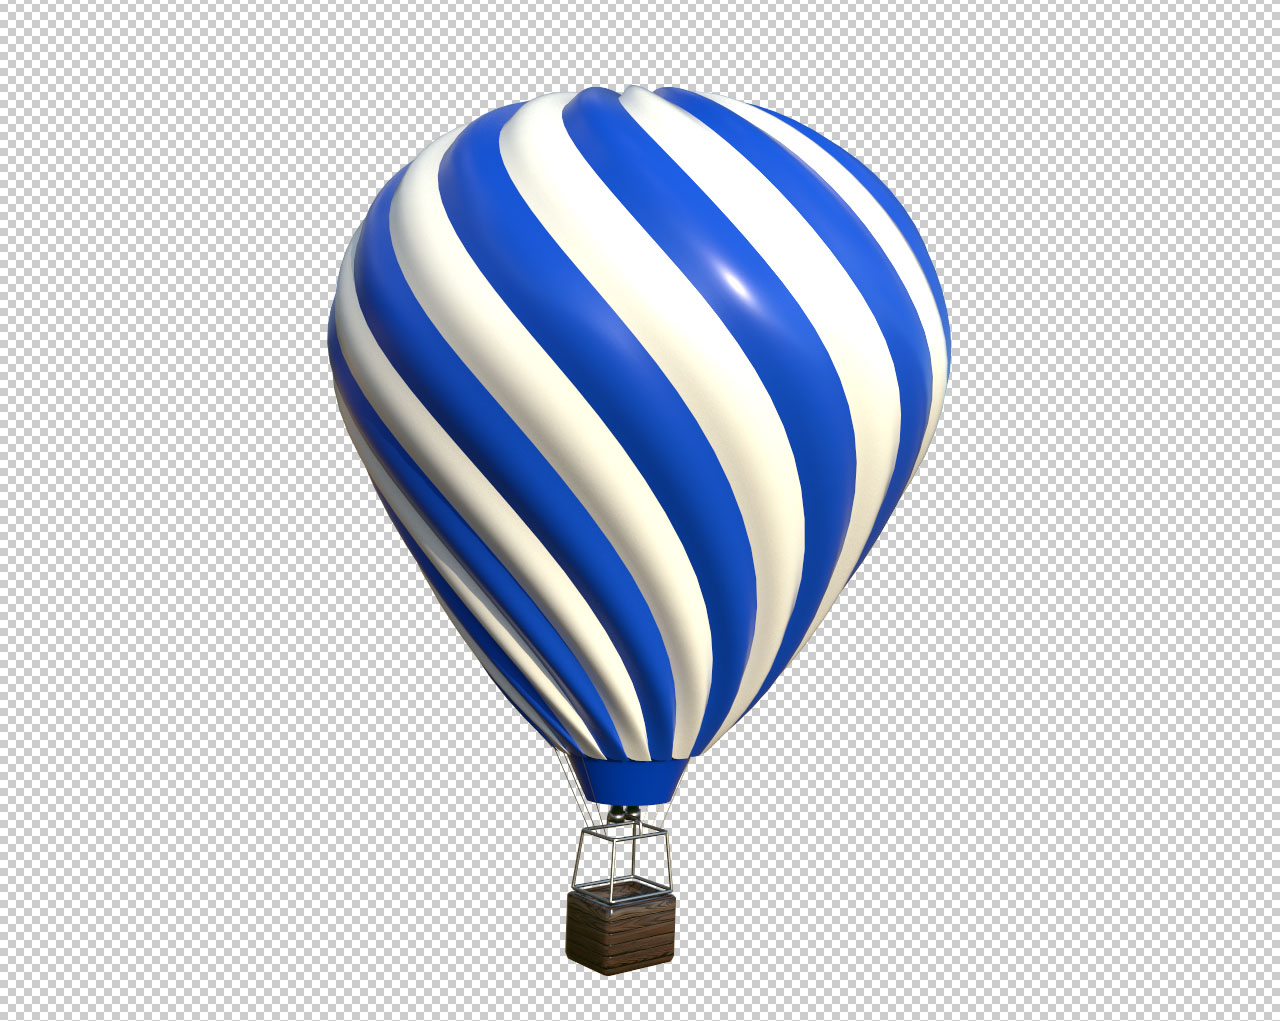 Free Balloon Renders PNG